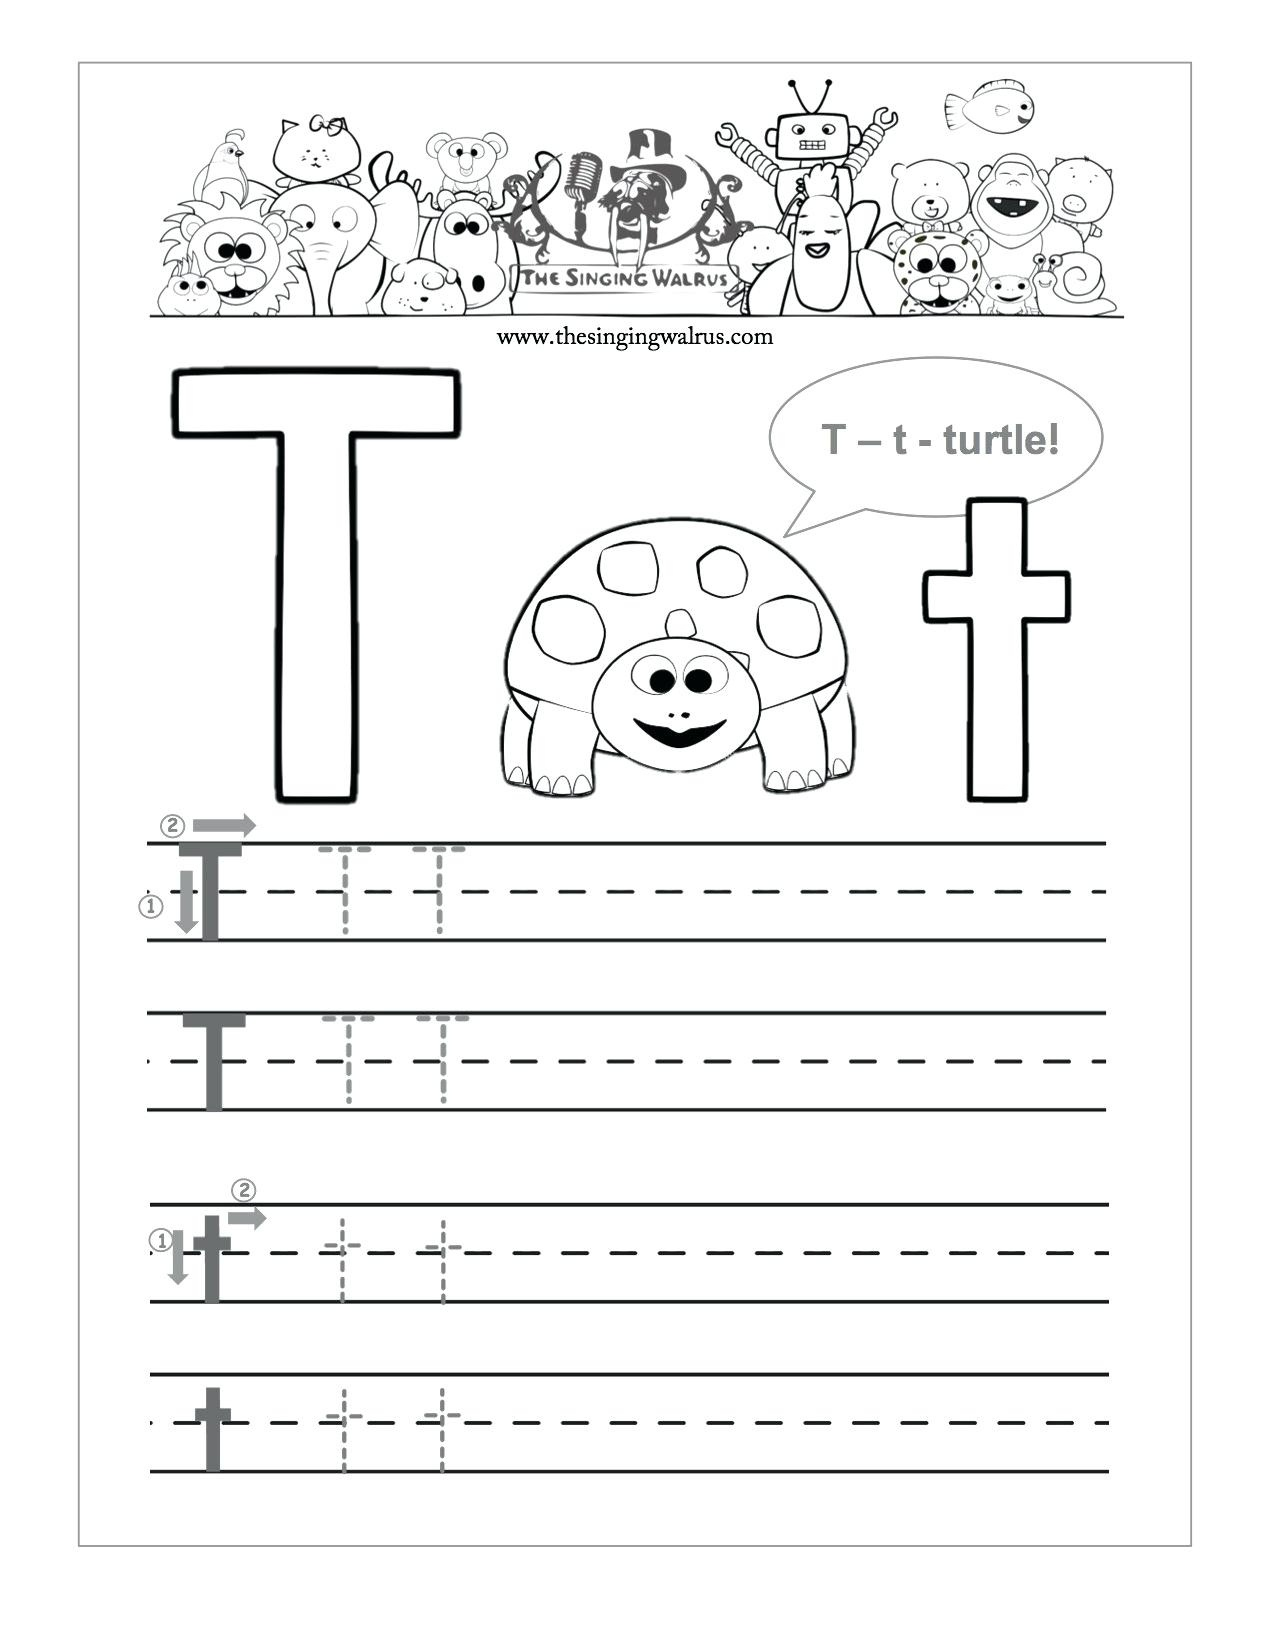 Preschool Letter Tracing Sheets Free Printable Preschool Worksheets - Free Printable Preschool Worksheets